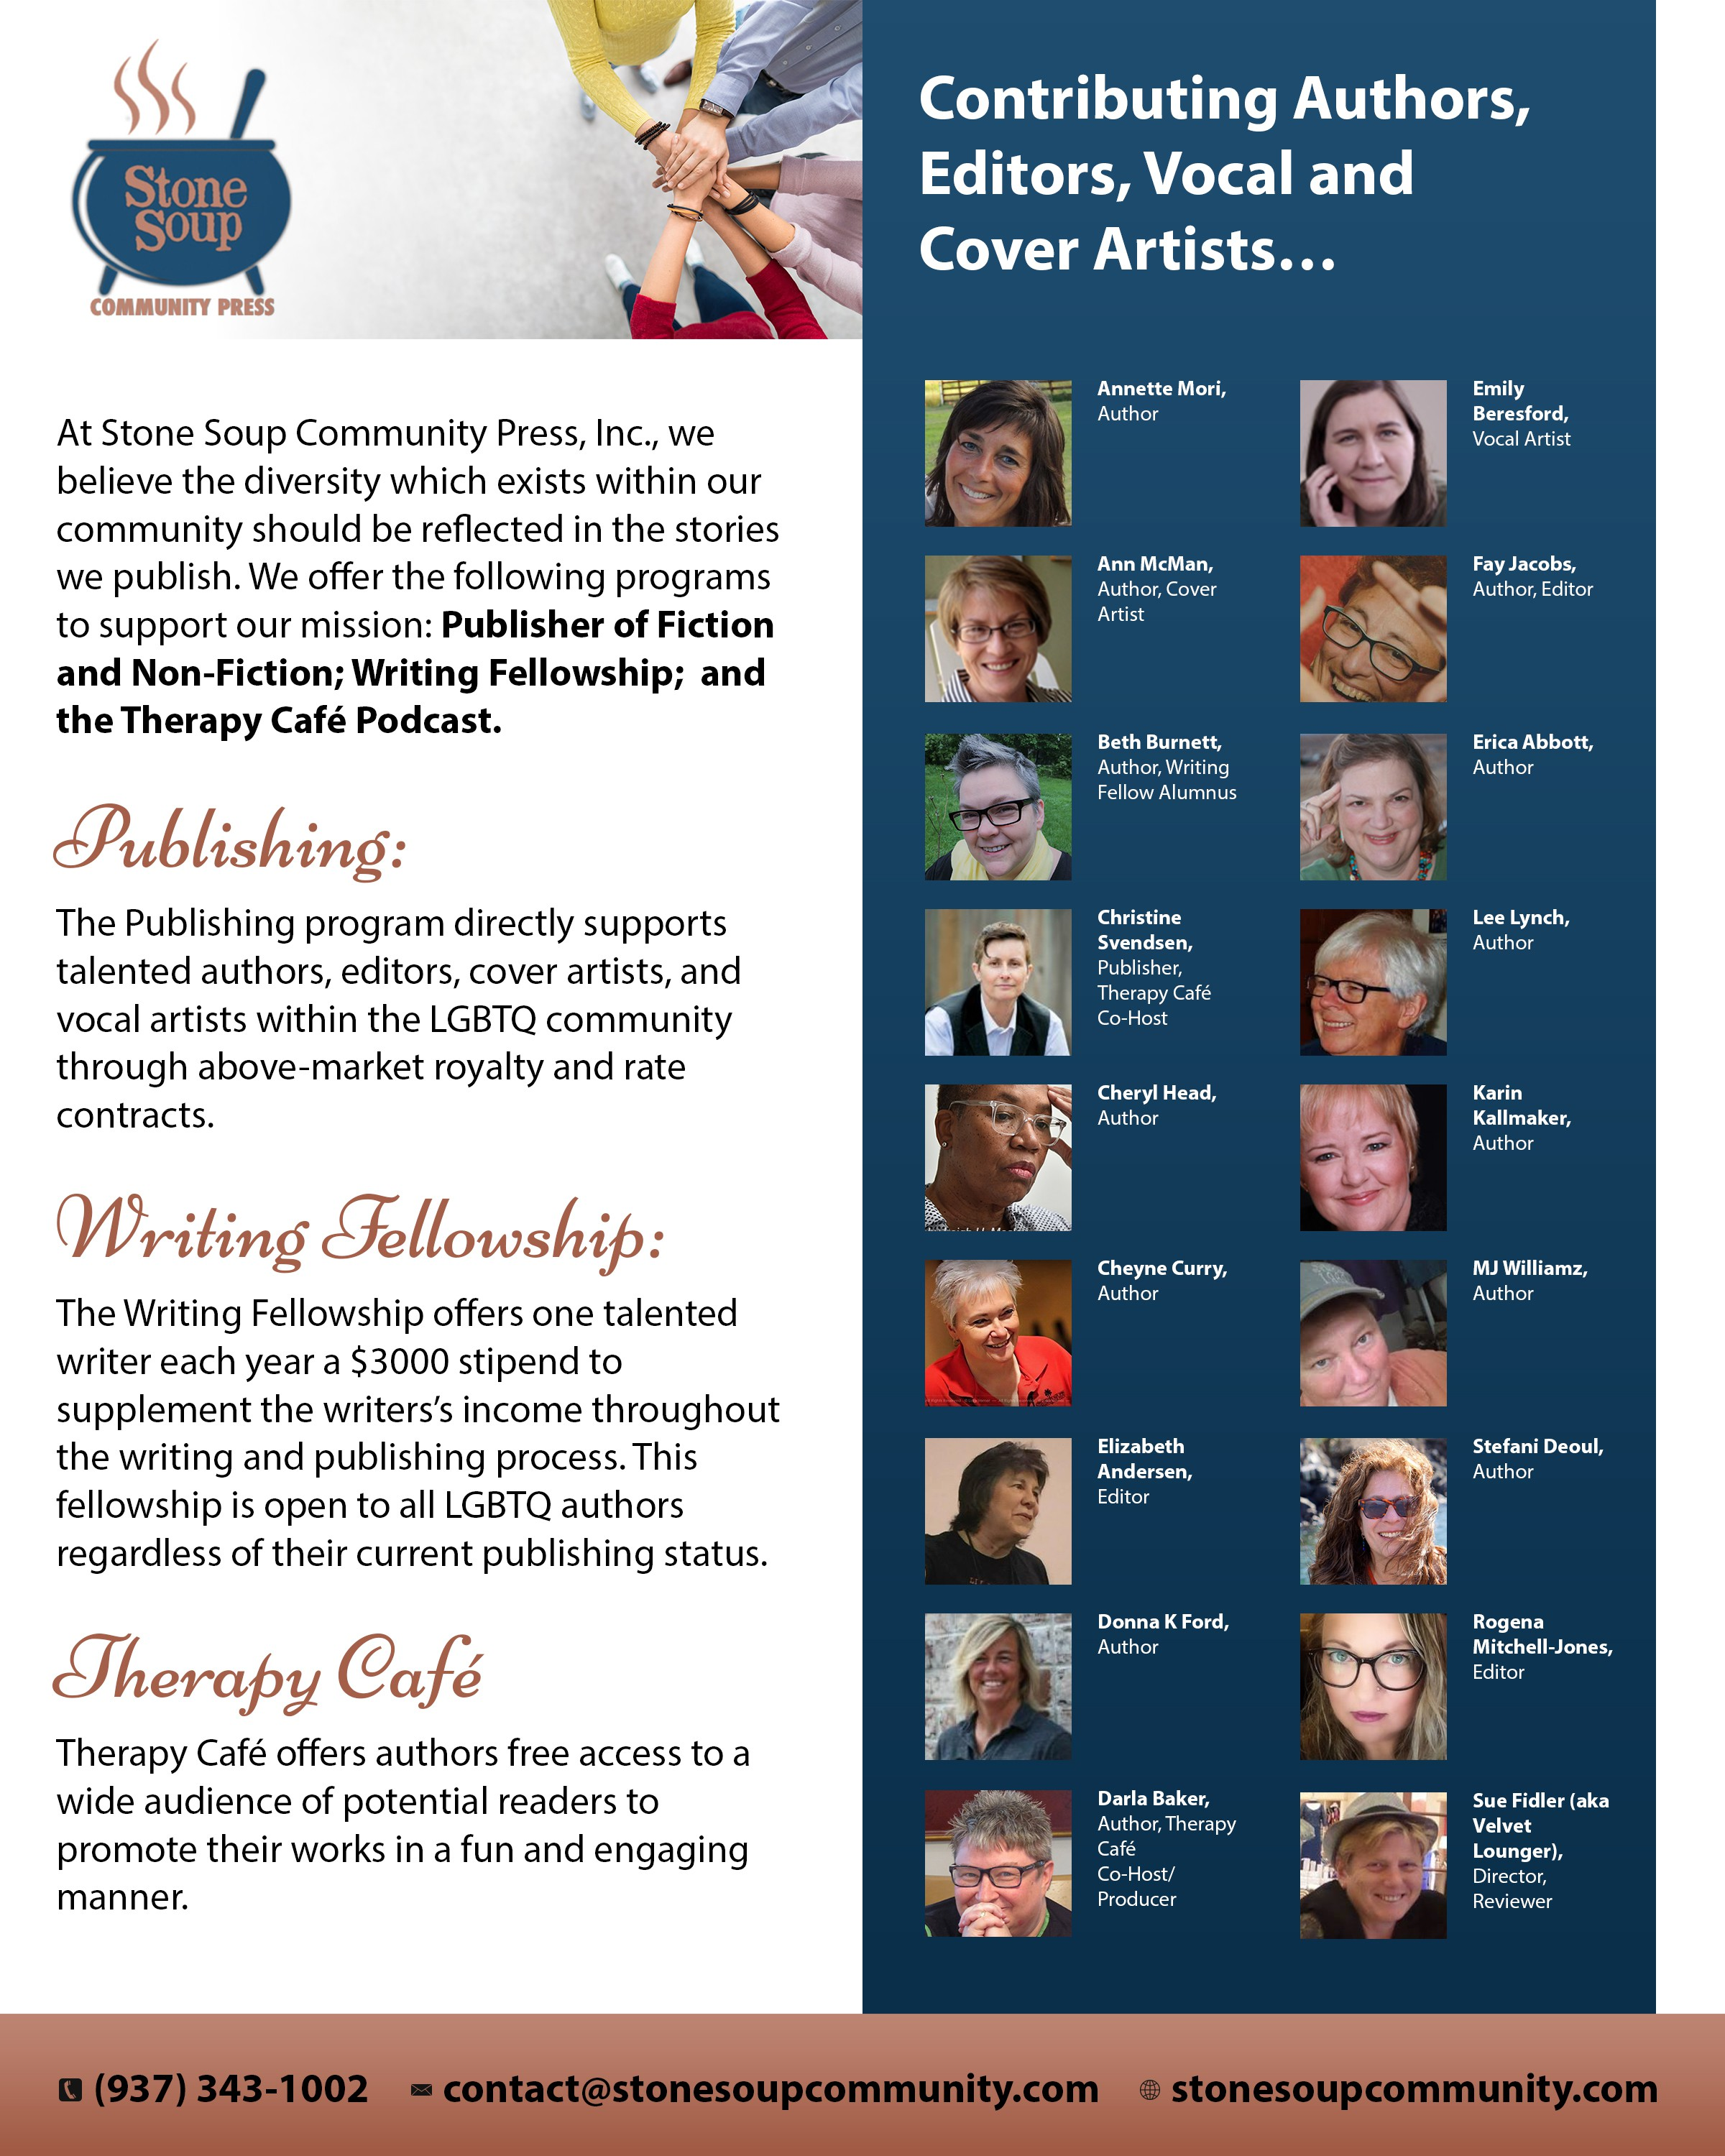 Create a Full Page Color Ad for a printed program for a literary awards event